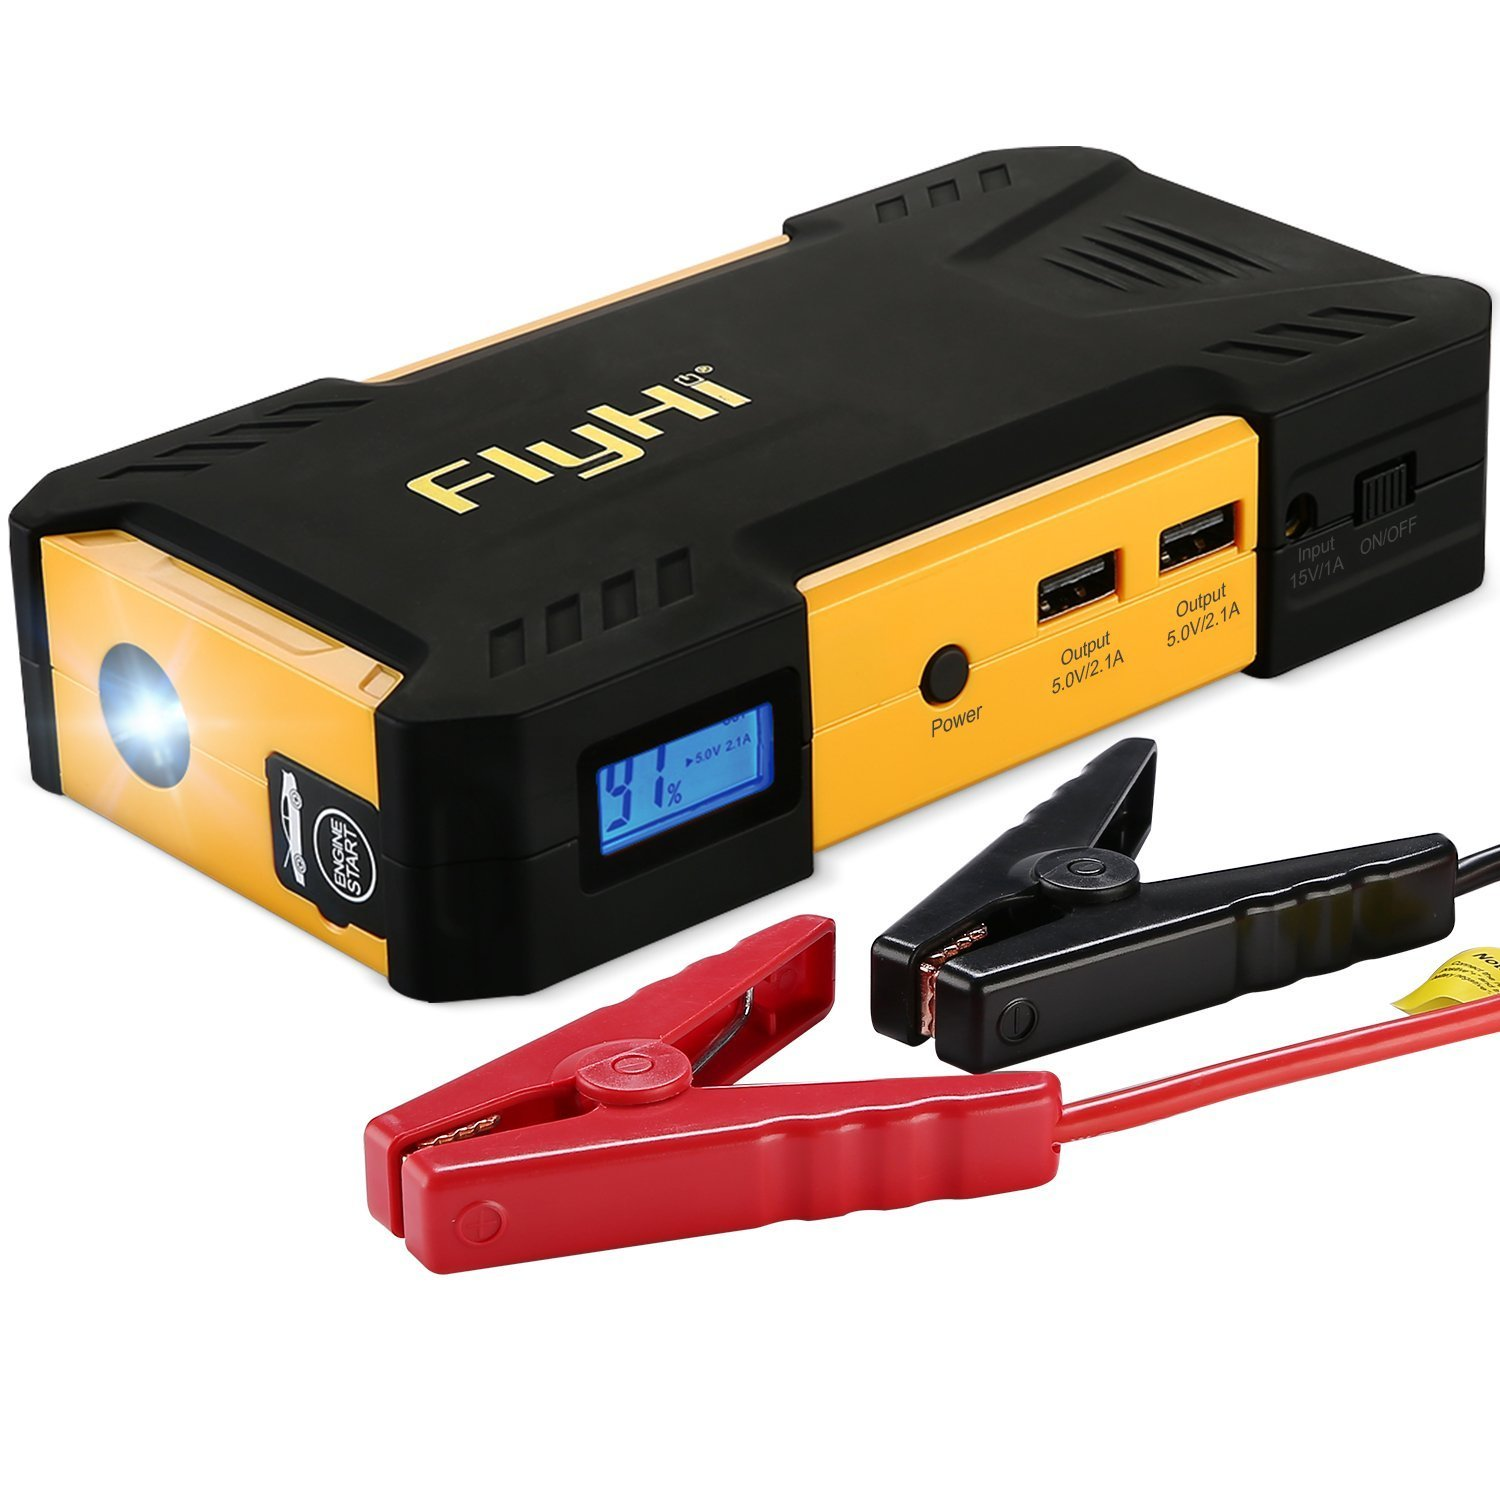 FlyHi 800A Peak 18000mAh Car Jump Starter D12 (Up to 6.5L Gas or 5.2L Diesel Engine) Battery Booster Portable Power Bank with LED Light and Smart USB Output